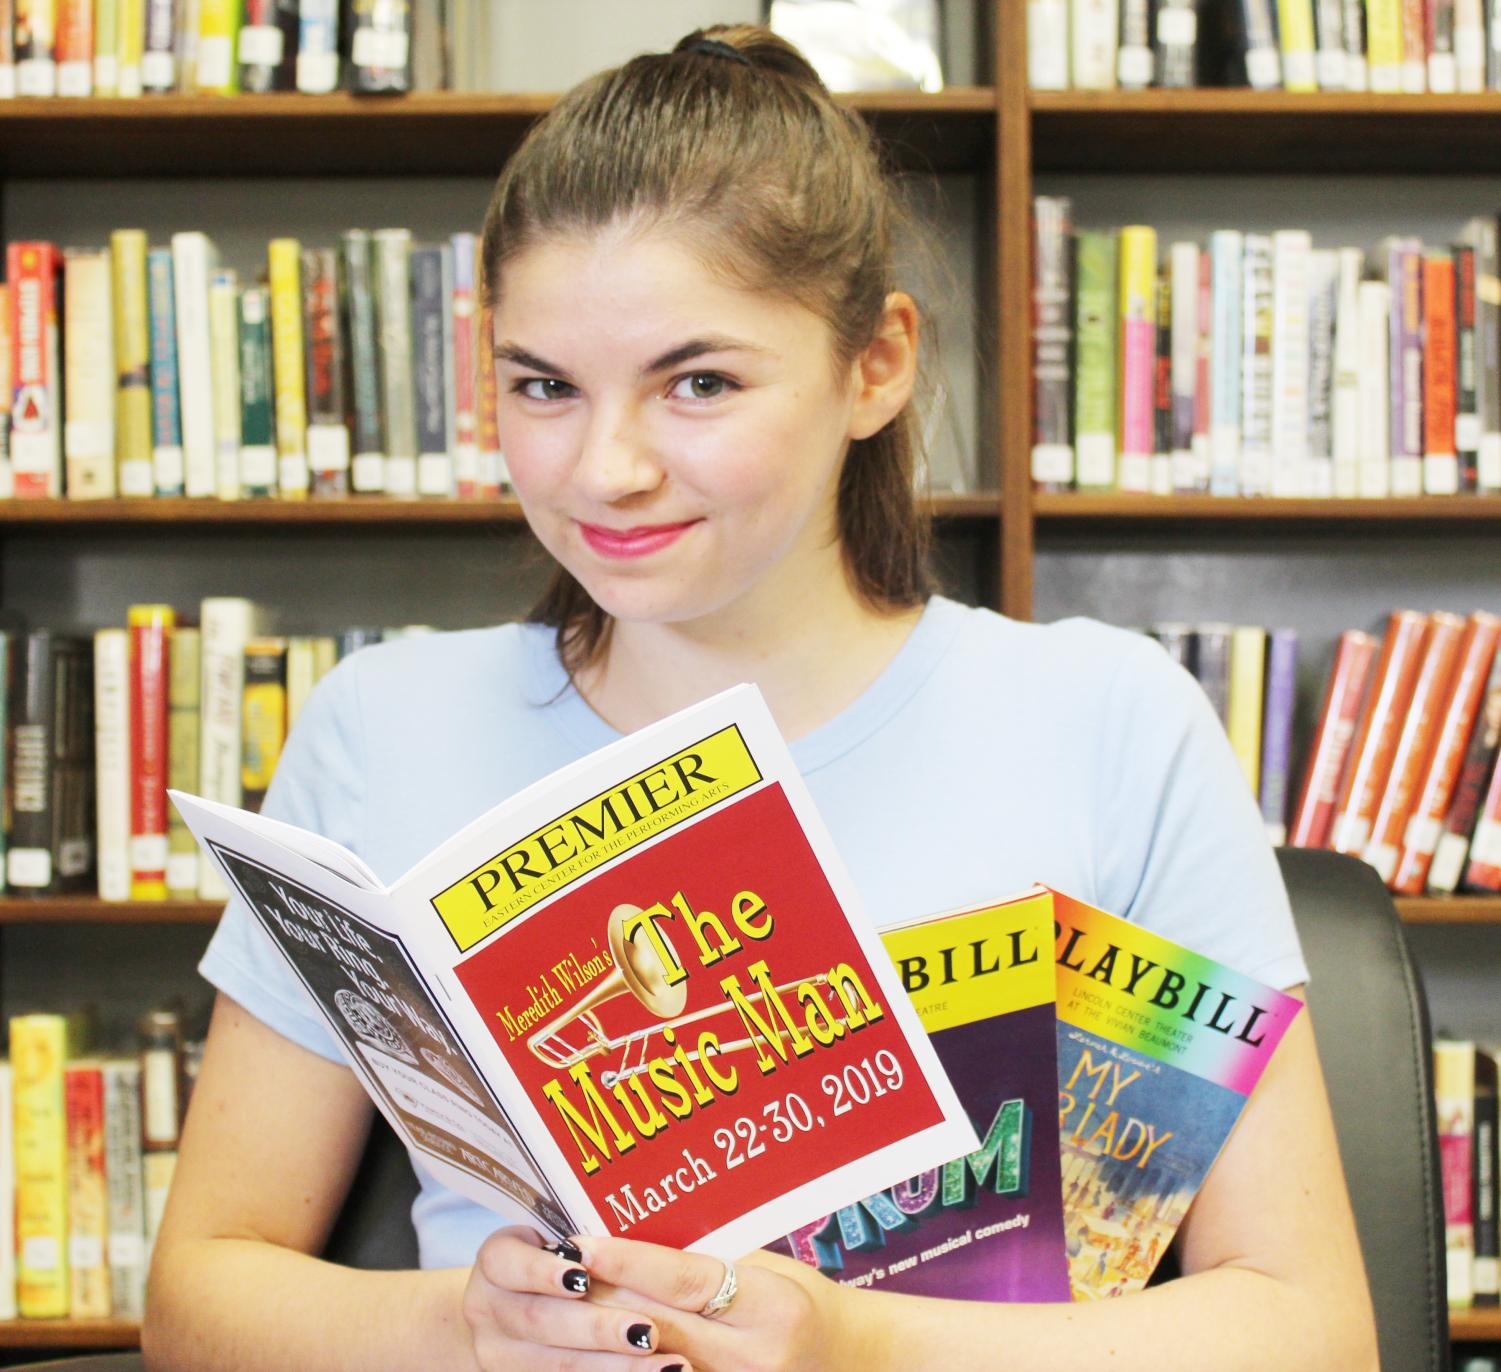 Faith Sirdashney is surely no stranger to theater. She is on stage, a critic in the seats, and a fangirl to so many shows. She will cover all things theater this year in her new column.